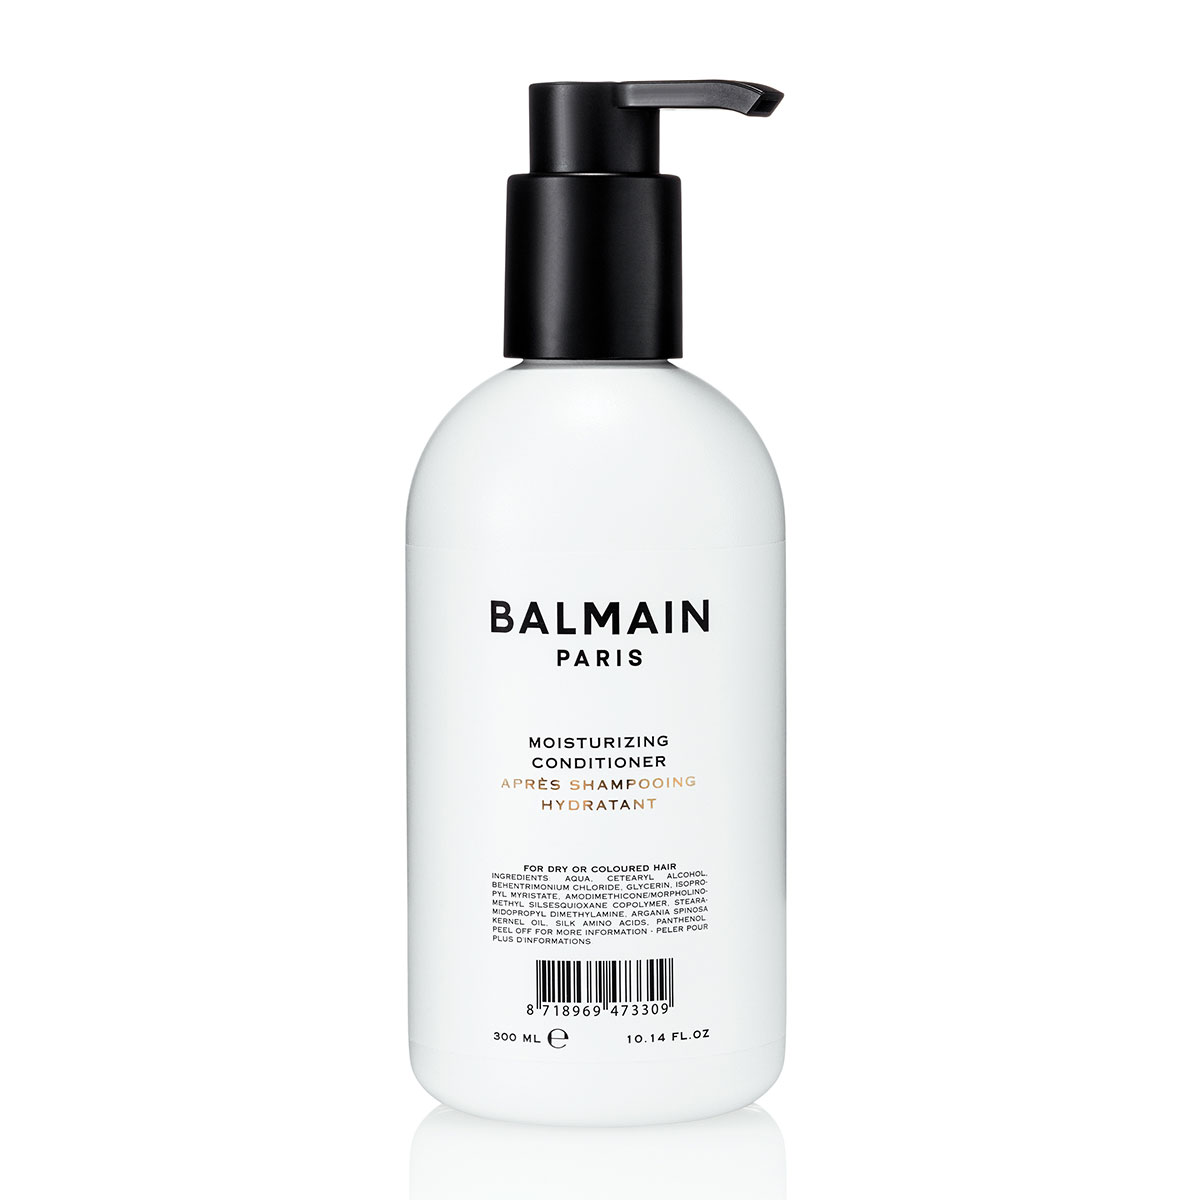 Balmain Moisturizing Conditioner 300ml